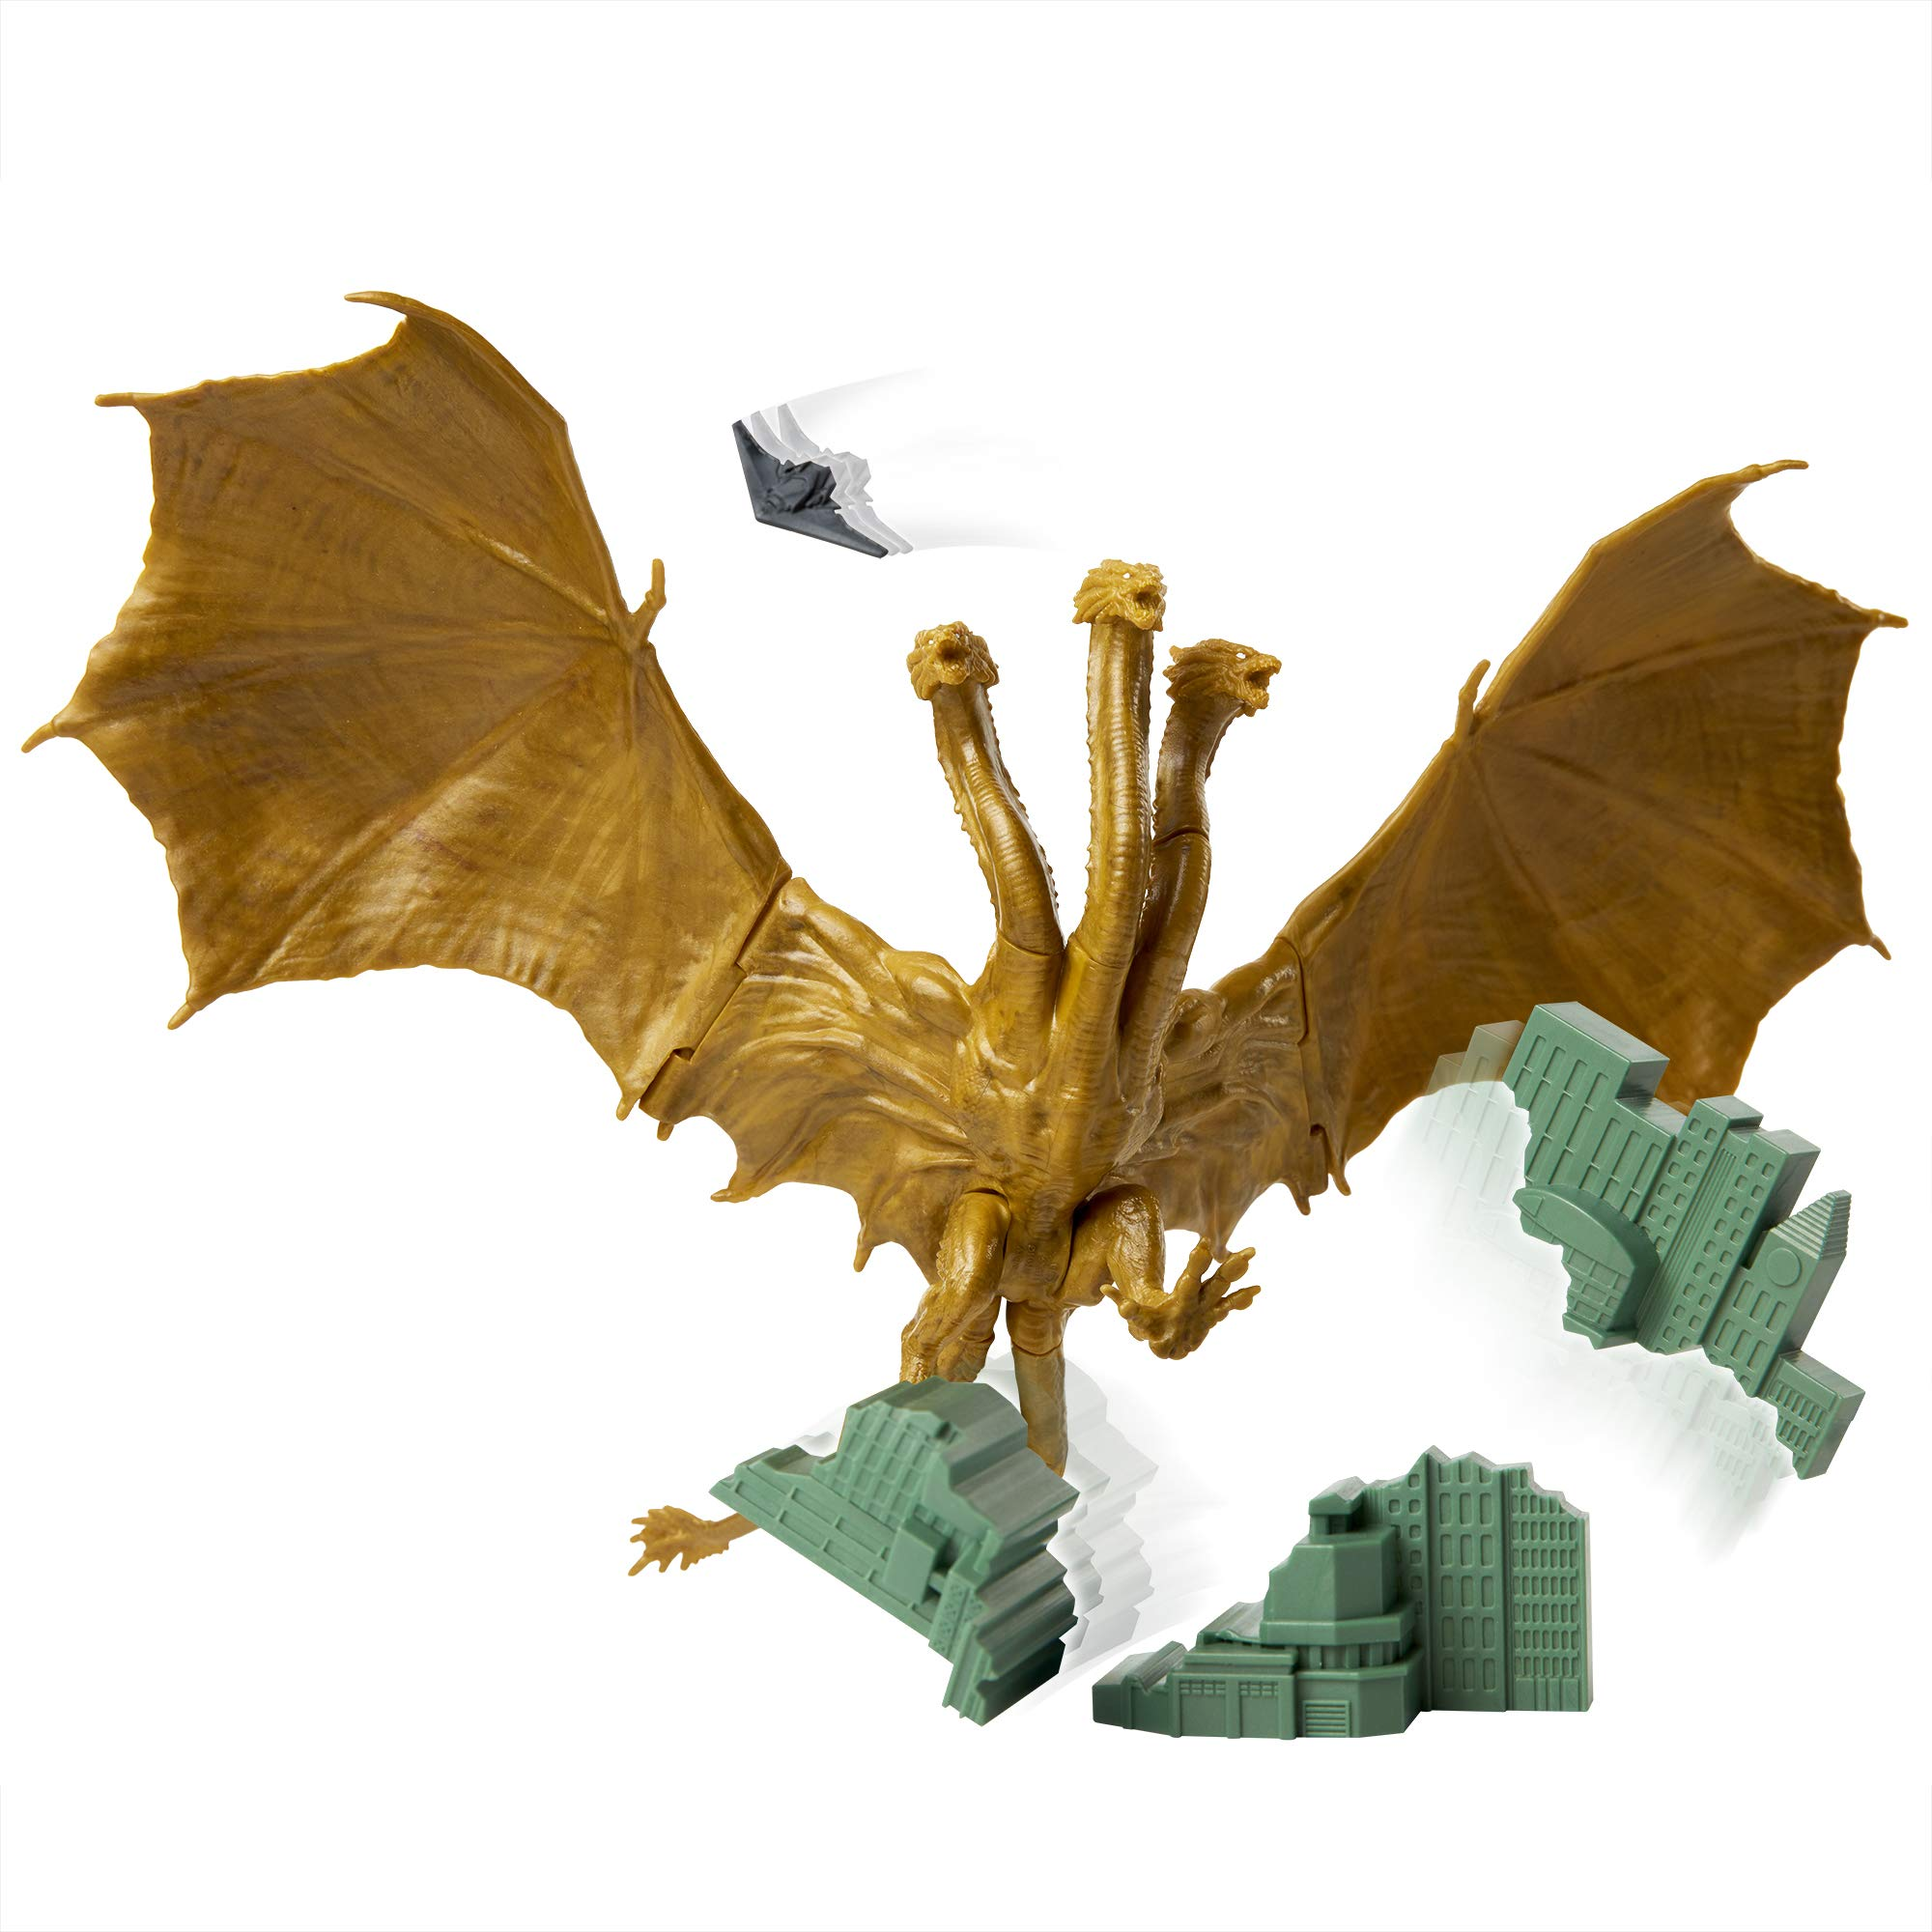 "Godzilla King of The Monsters: 6"" King Ghidorah Articulated Action Figure with Argo Jet & Destructible City"